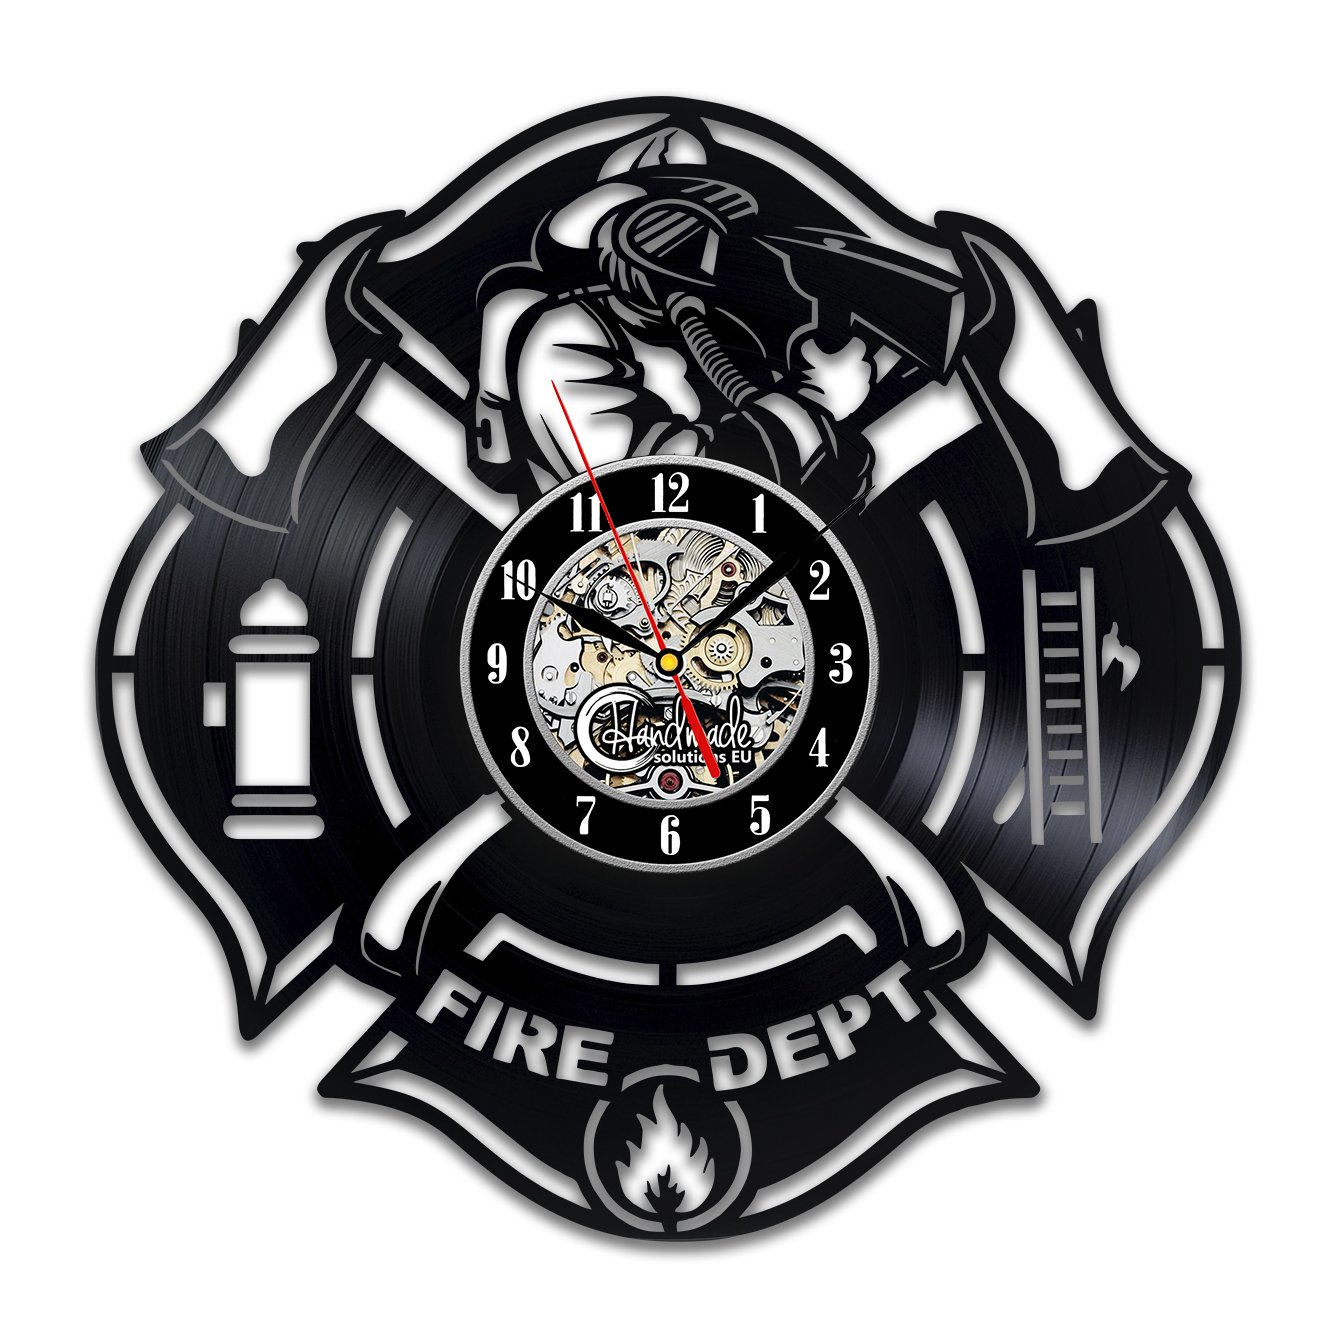 Fire Department Wall Clock Patch Badge Design Stickers Proffessional Decor Merchandise Life Fire Servise Profession Home Artwork Gifts Handmade Solutions EU HS77-1609